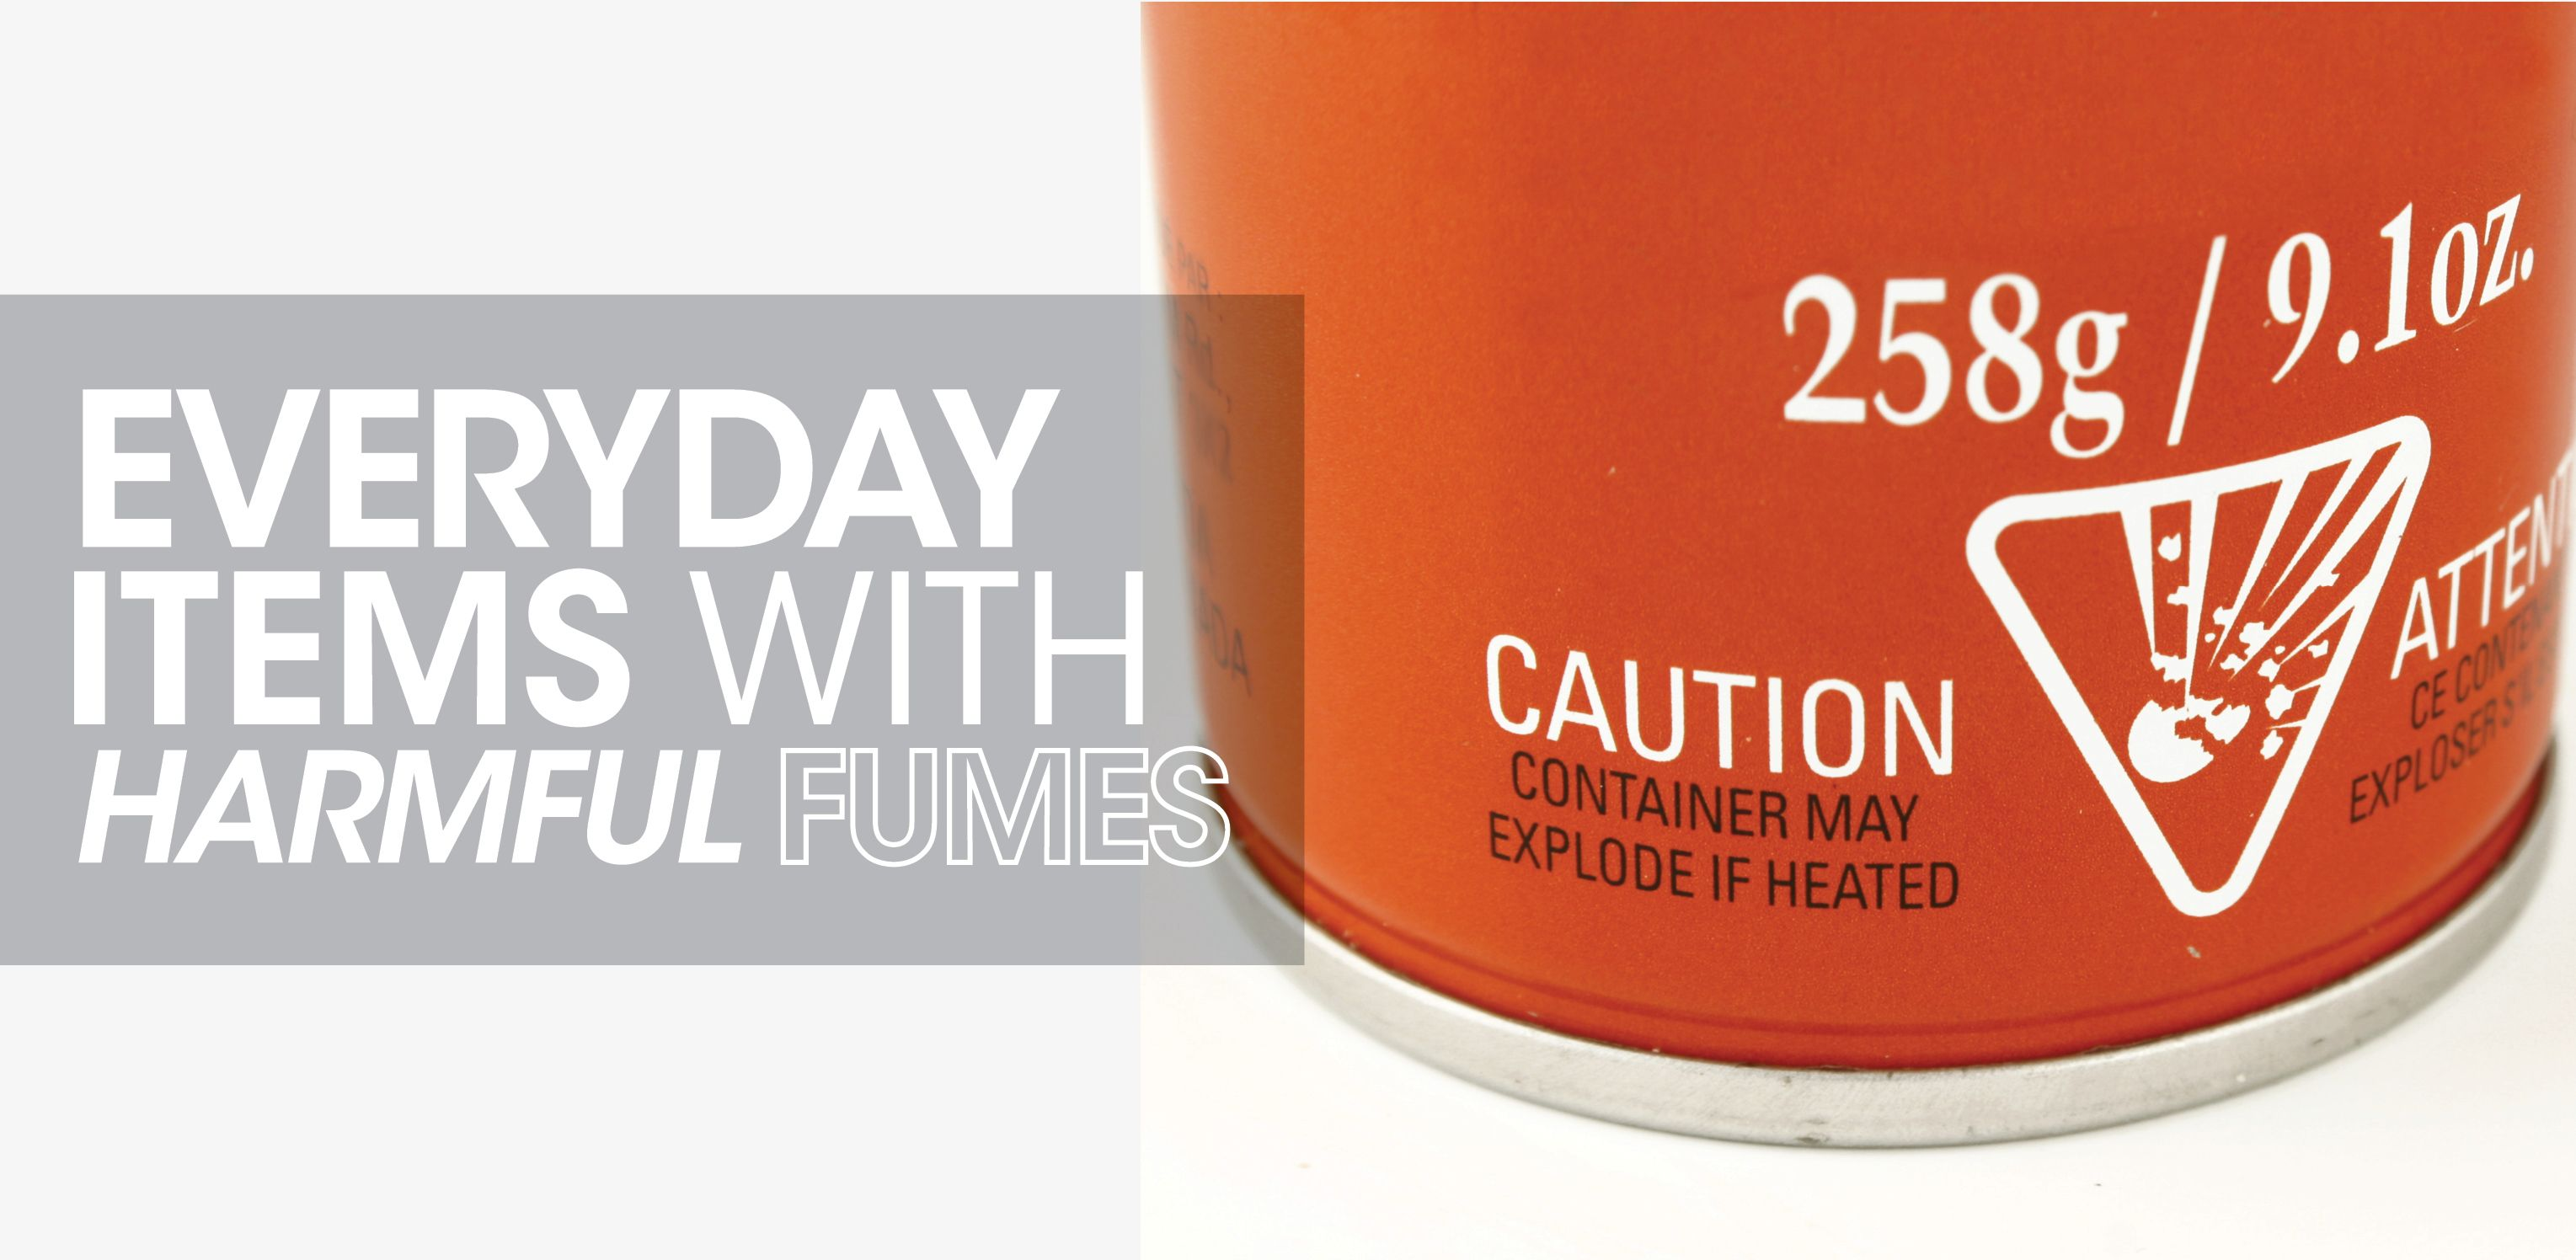 Everyday Items With Harmful Fumes Everyday Items Indoor Air Quality